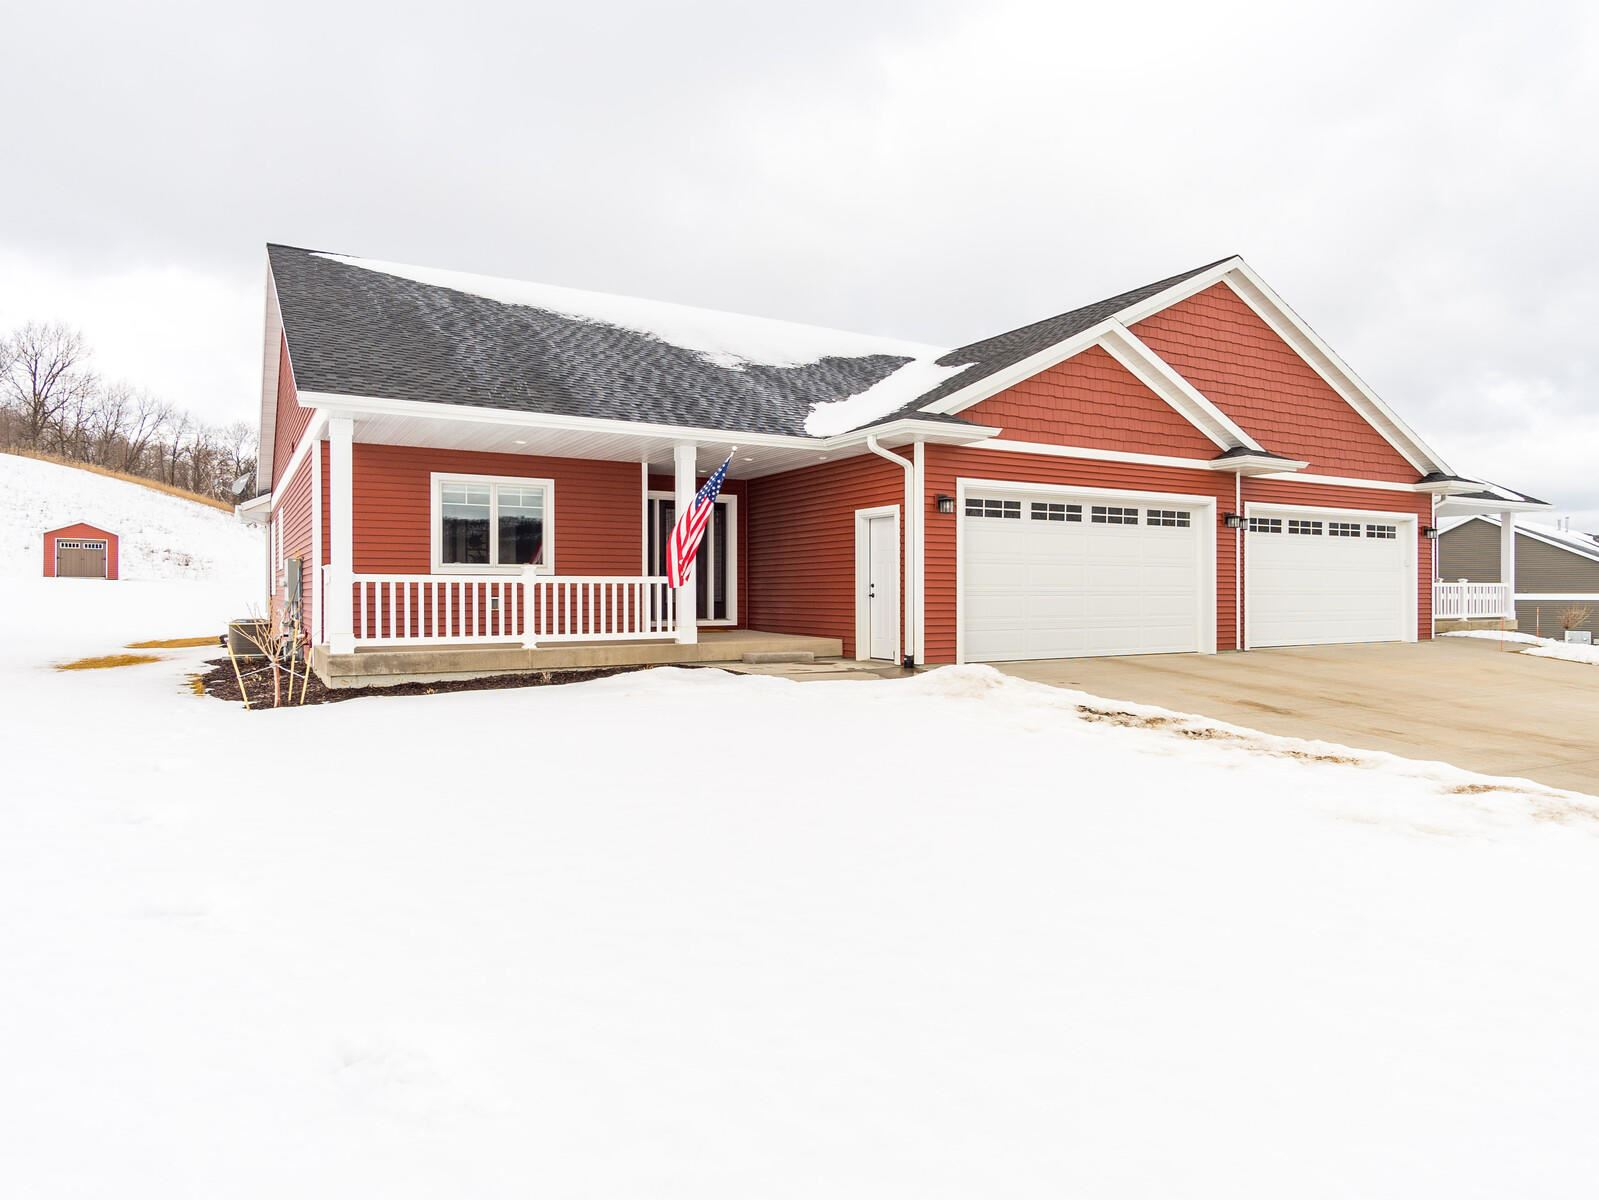 W6465 Oakwood CIR, Onalaska, WI 54636 - MLS#: 1728272